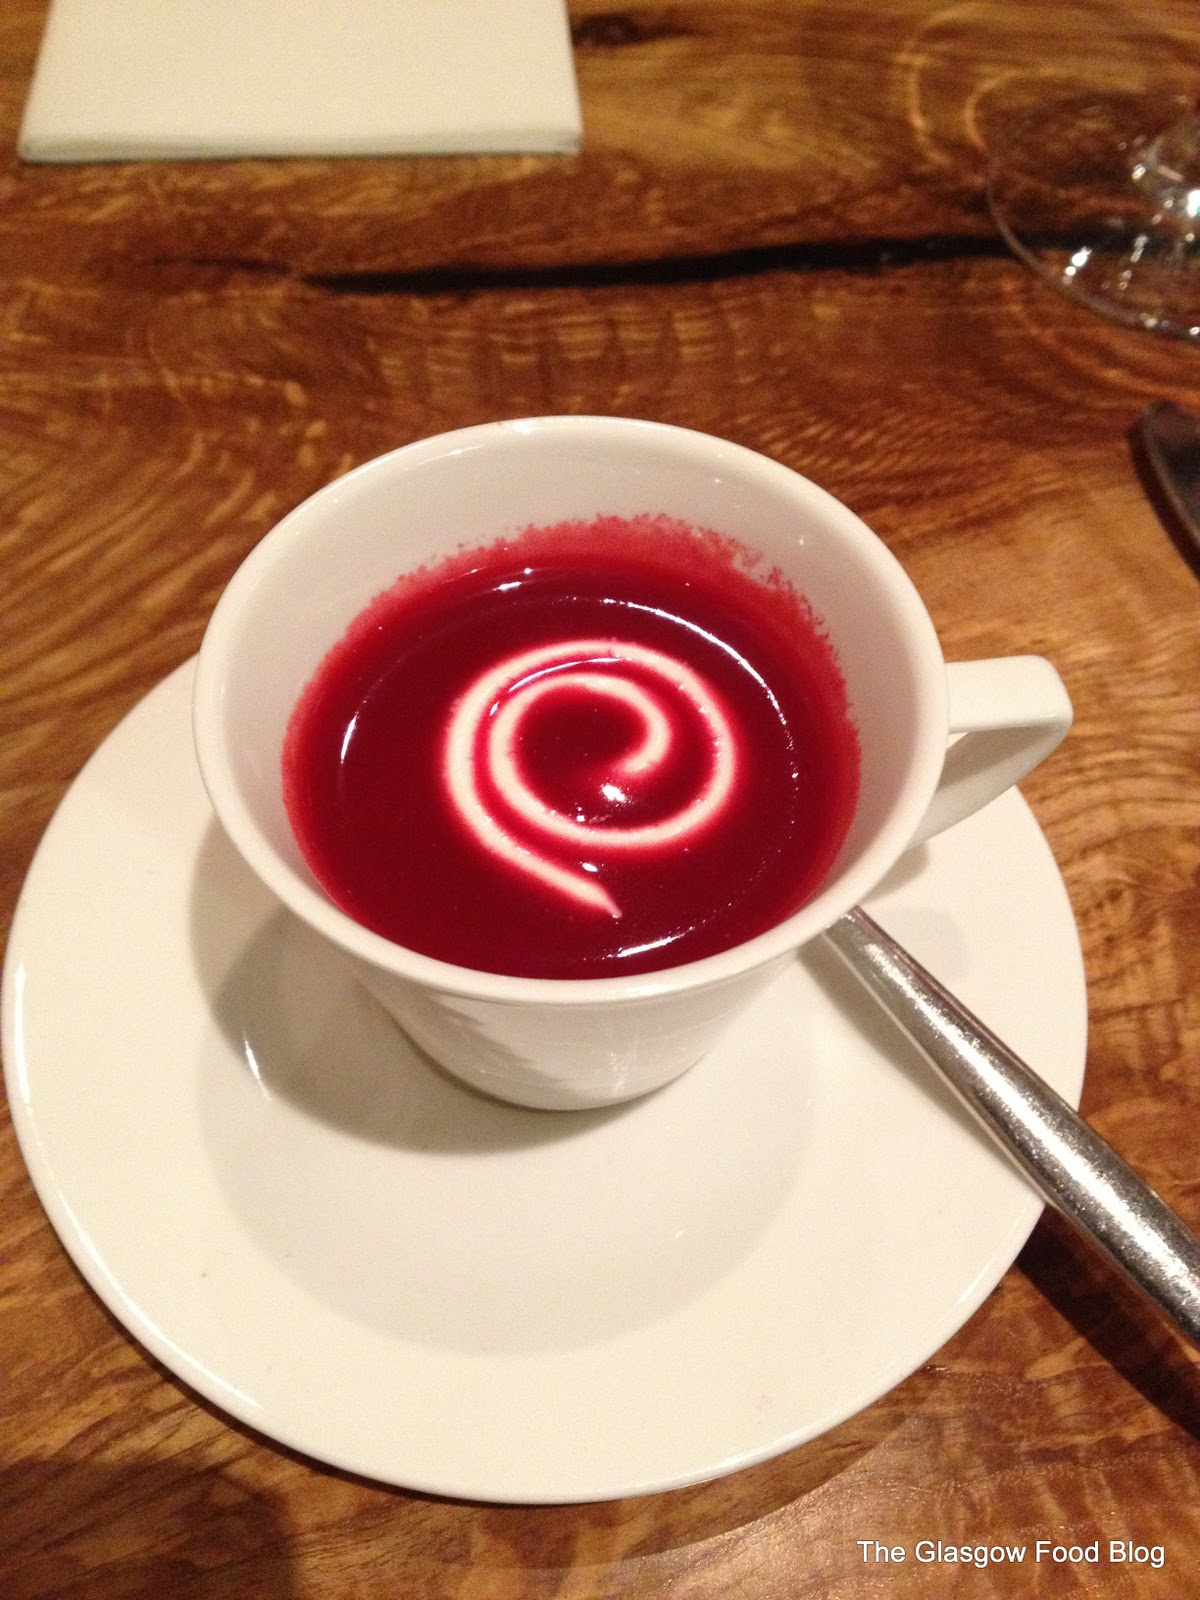 Beetroot veloute at Ian Brown Giffnock